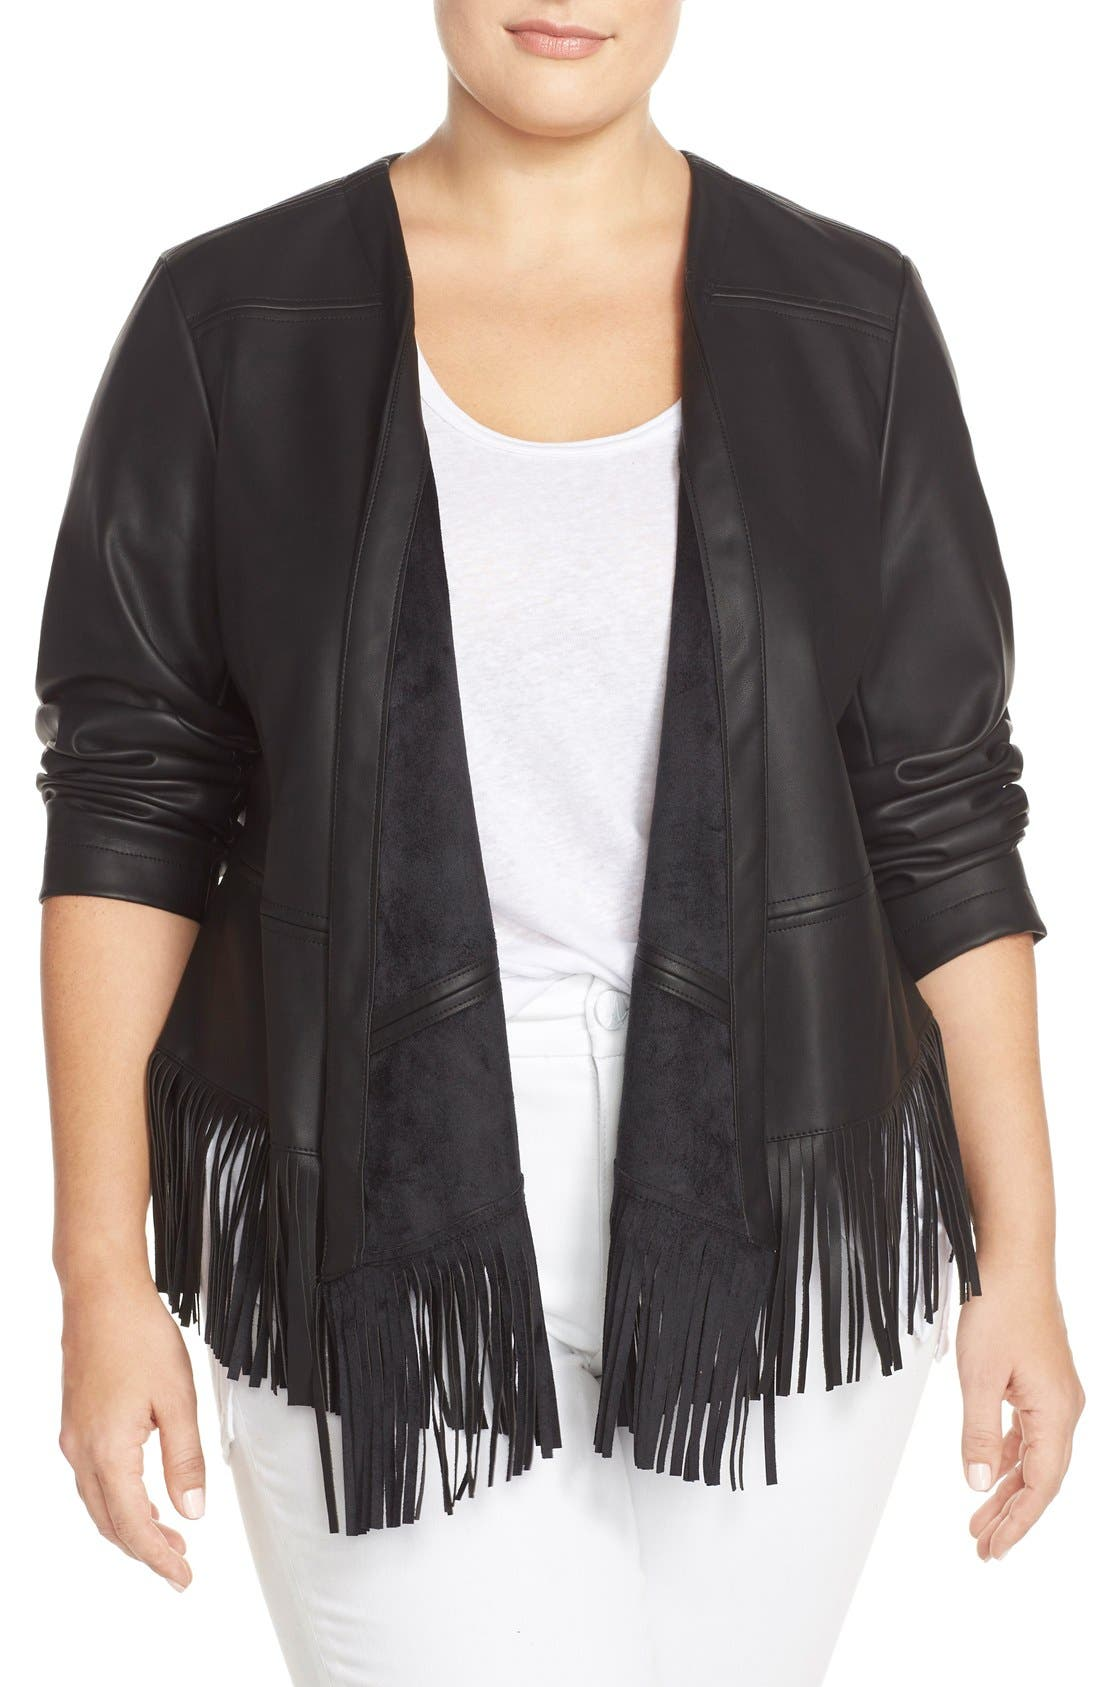 Alternate Image 1 Selected - Bernardo Fringe Faux Leather Jacket (Plus Size)